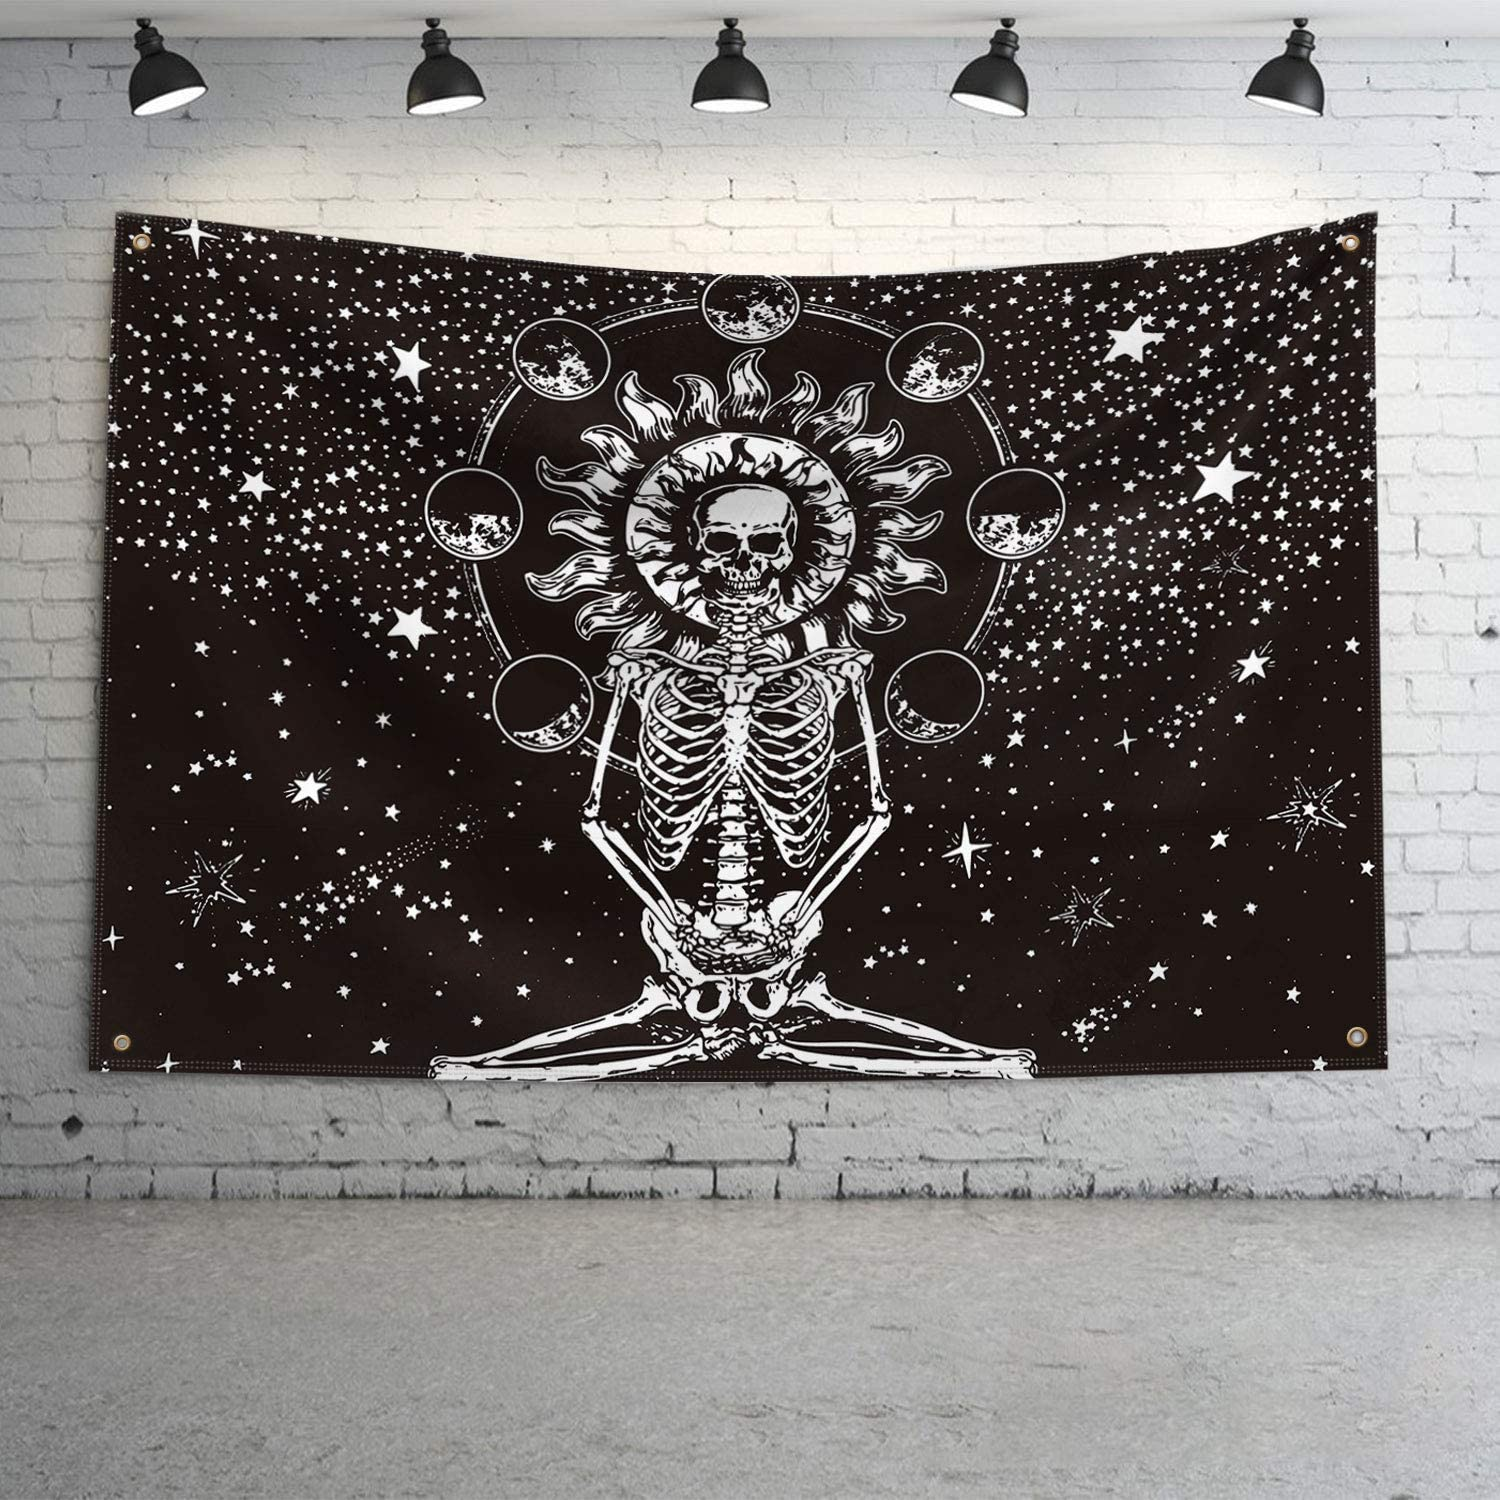 QOR Balance Halloween Decor Meditation Skeleton Wall Banner Skull Chakra Starry Wall Hanging Heavy Wind with Brass Grommets for College Dorm Room Man Cave Frat Wall Outdoor Flag 3x5 Ft